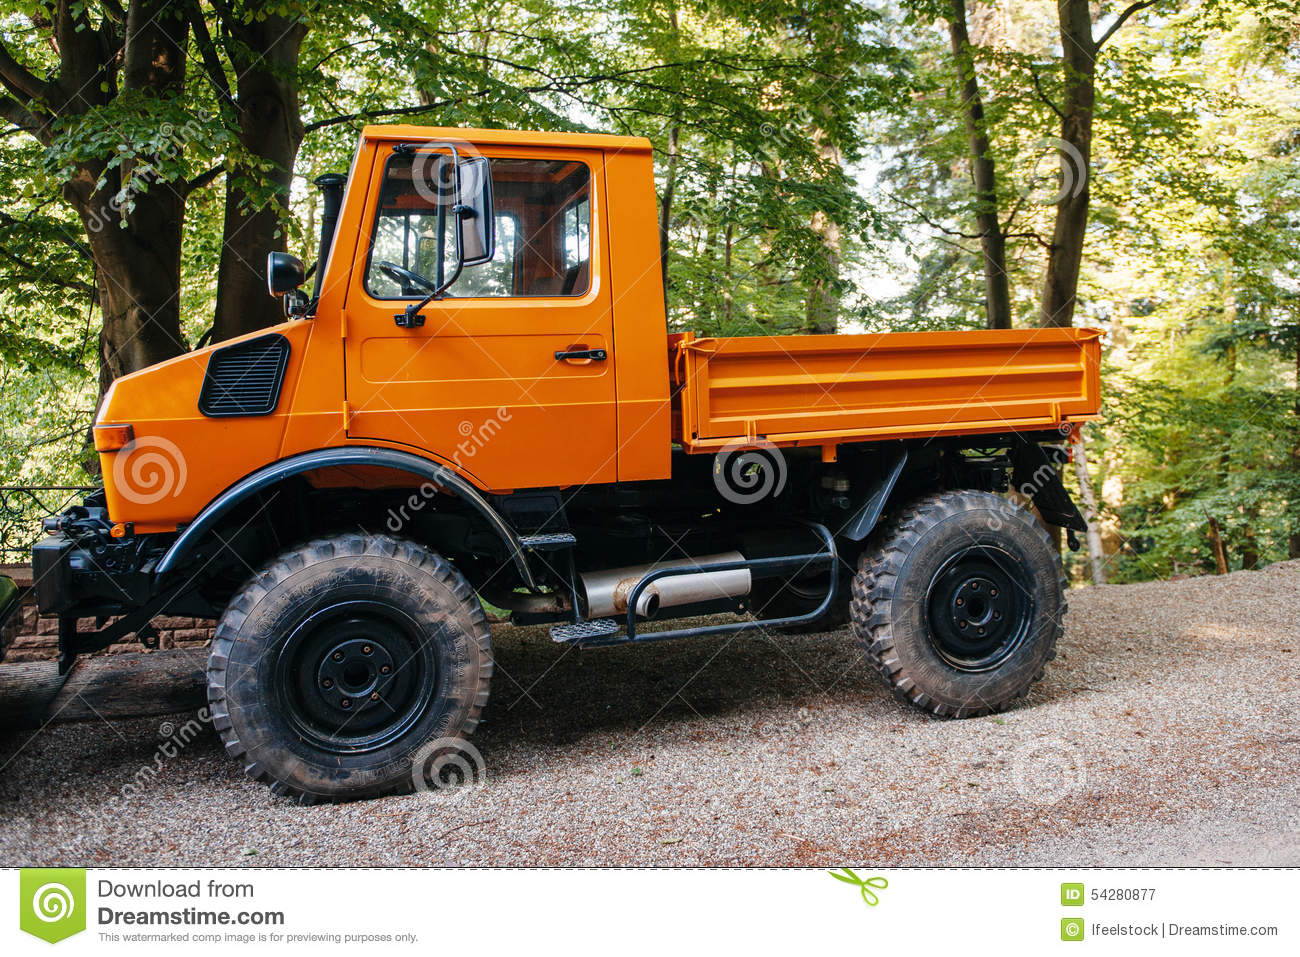 unimog four wheel drive vehicle as seen on a forest road. Black Bedroom Furniture Sets. Home Design Ideas